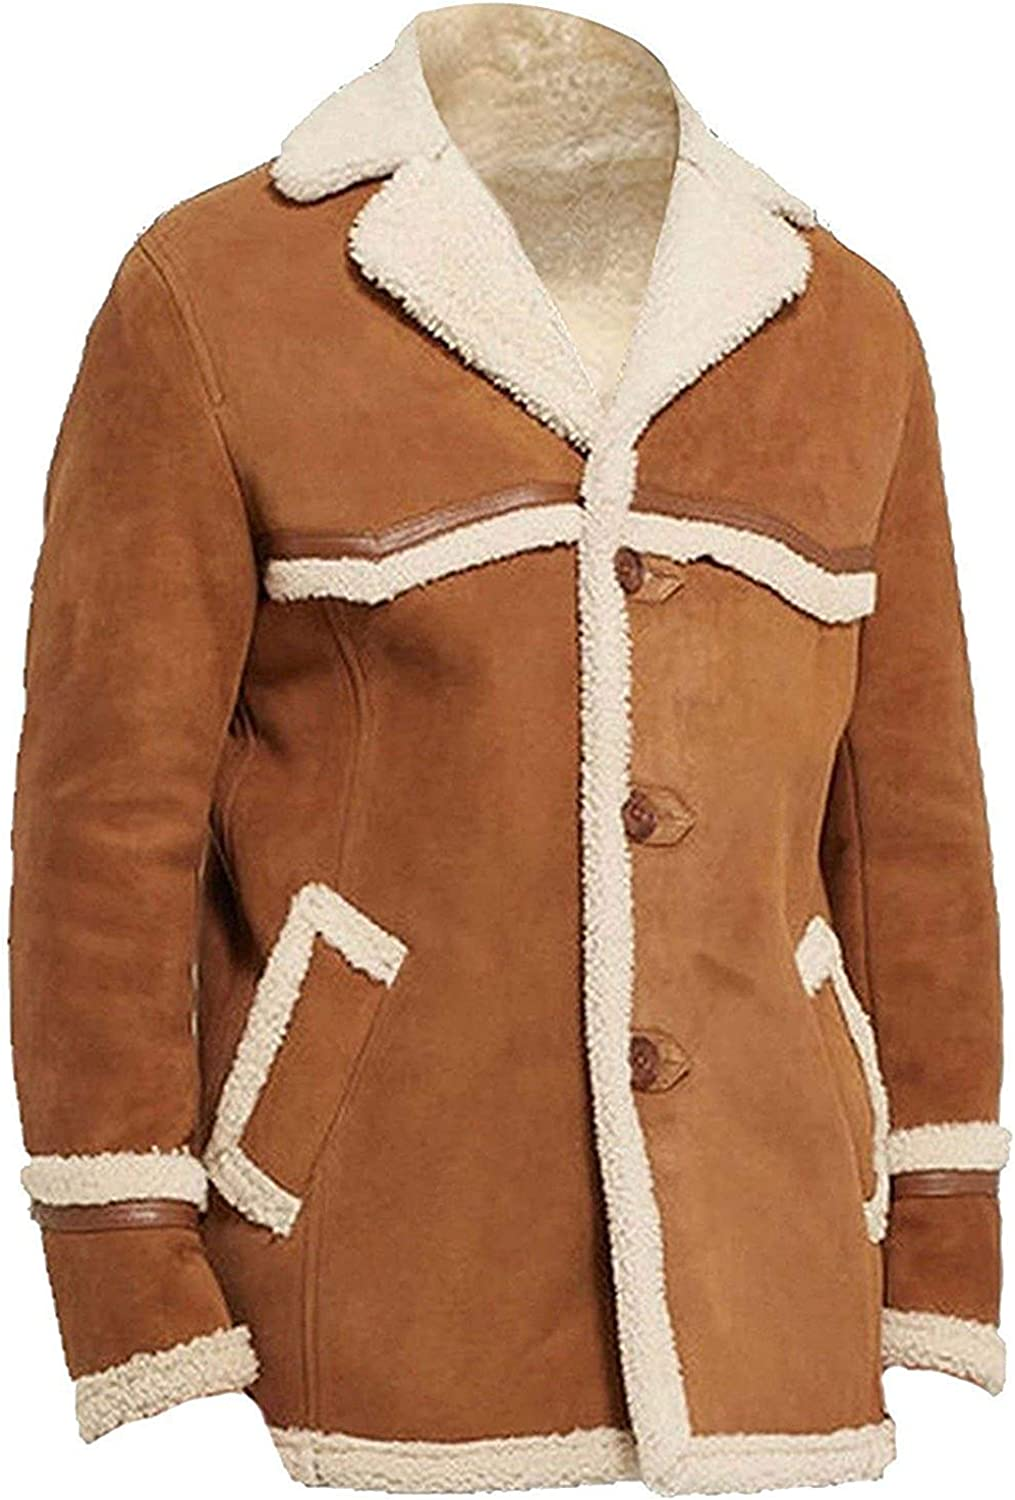 Men's Womens Brown Suede Leather Coat/Jacket With white Fur